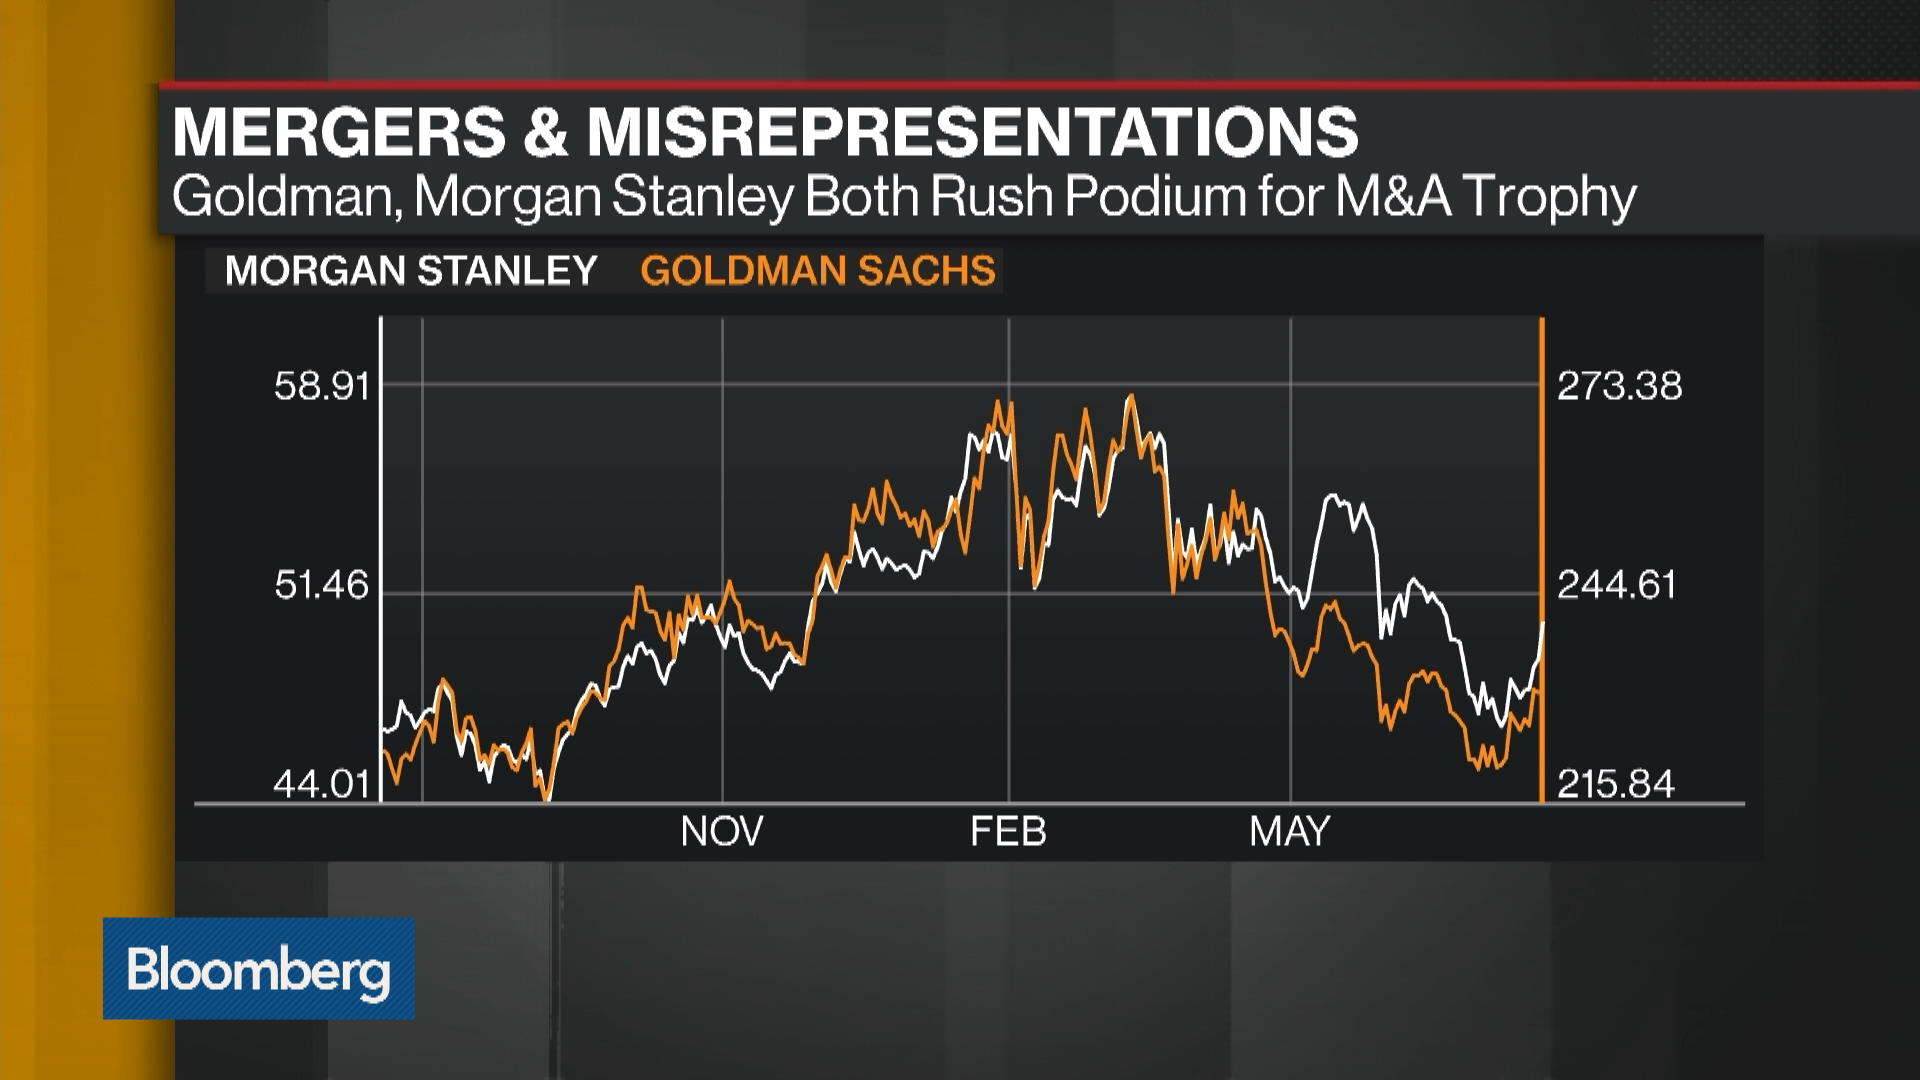 Awkward: Goldman, Morgan Stanley Both Rush Podium for M&A